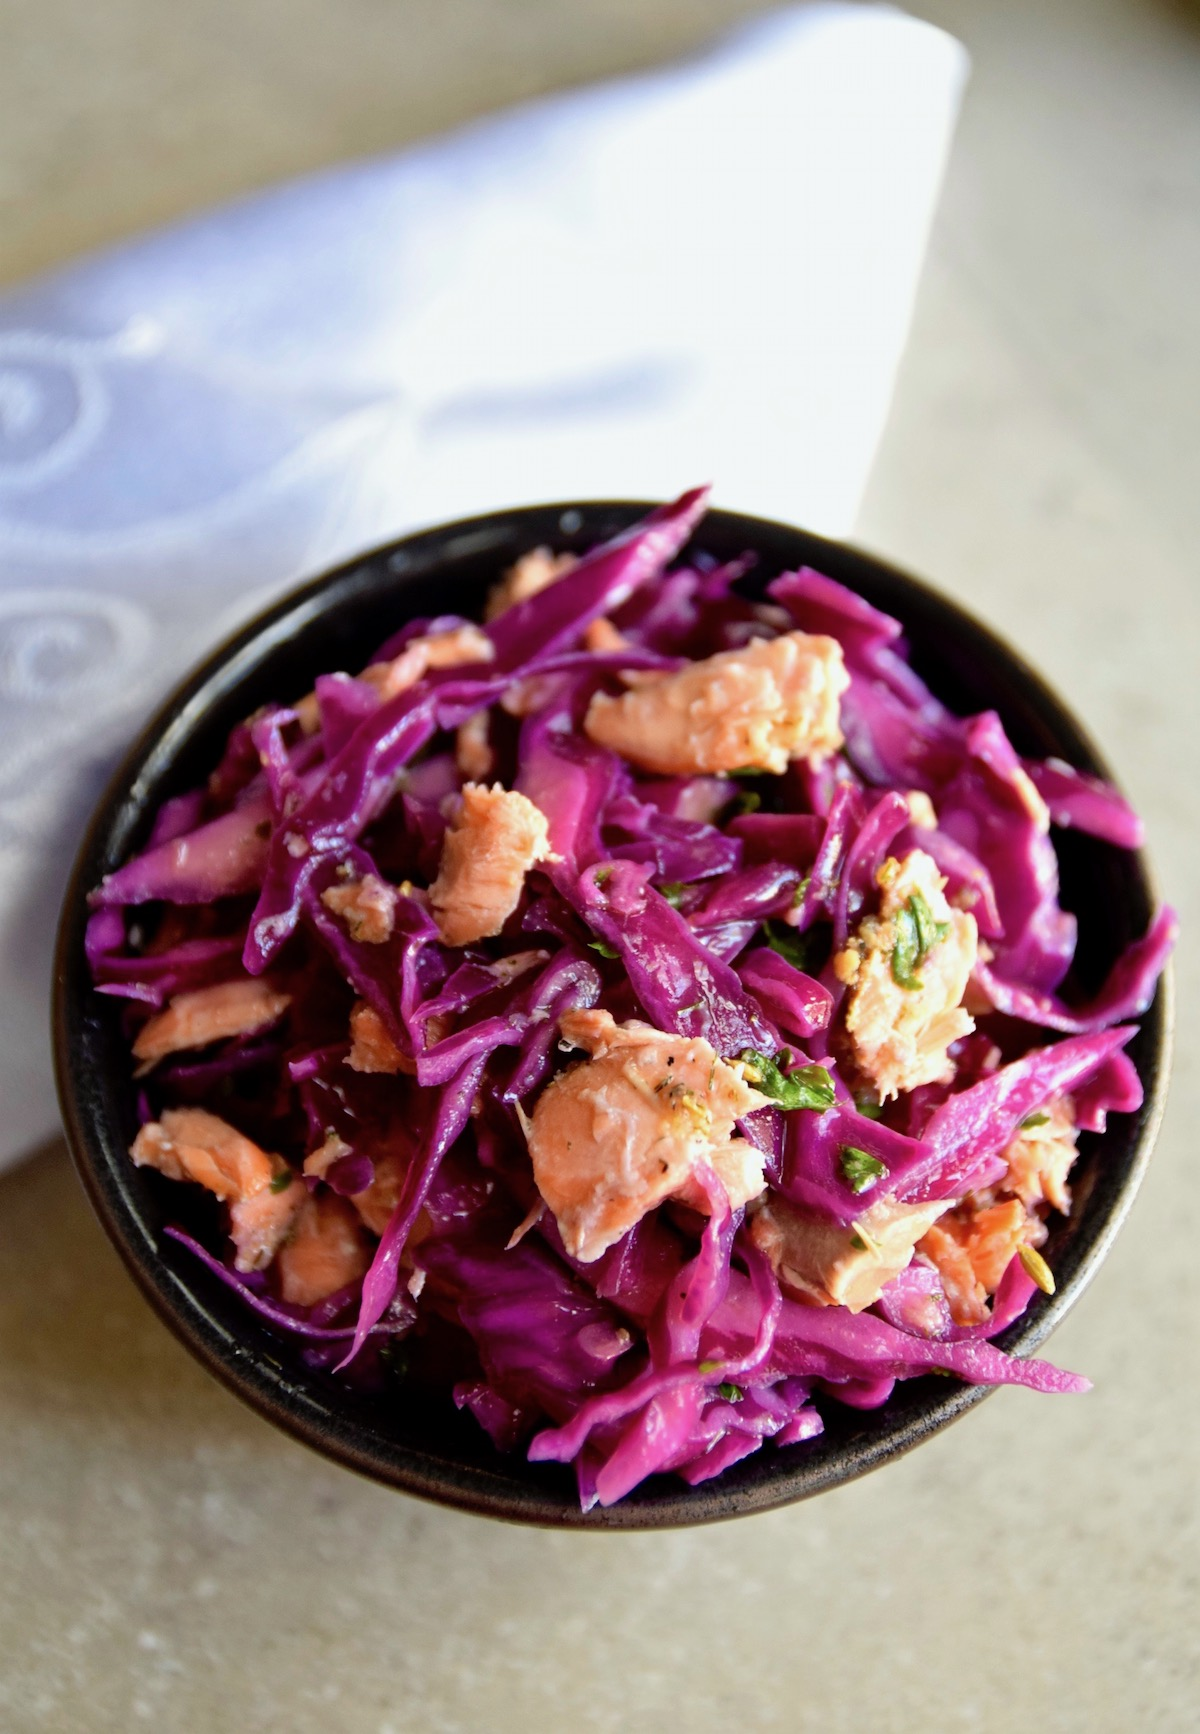 Fill your diet with antioxidant rich, colorful foods like this easy red cabbage salad | TastingPage.com